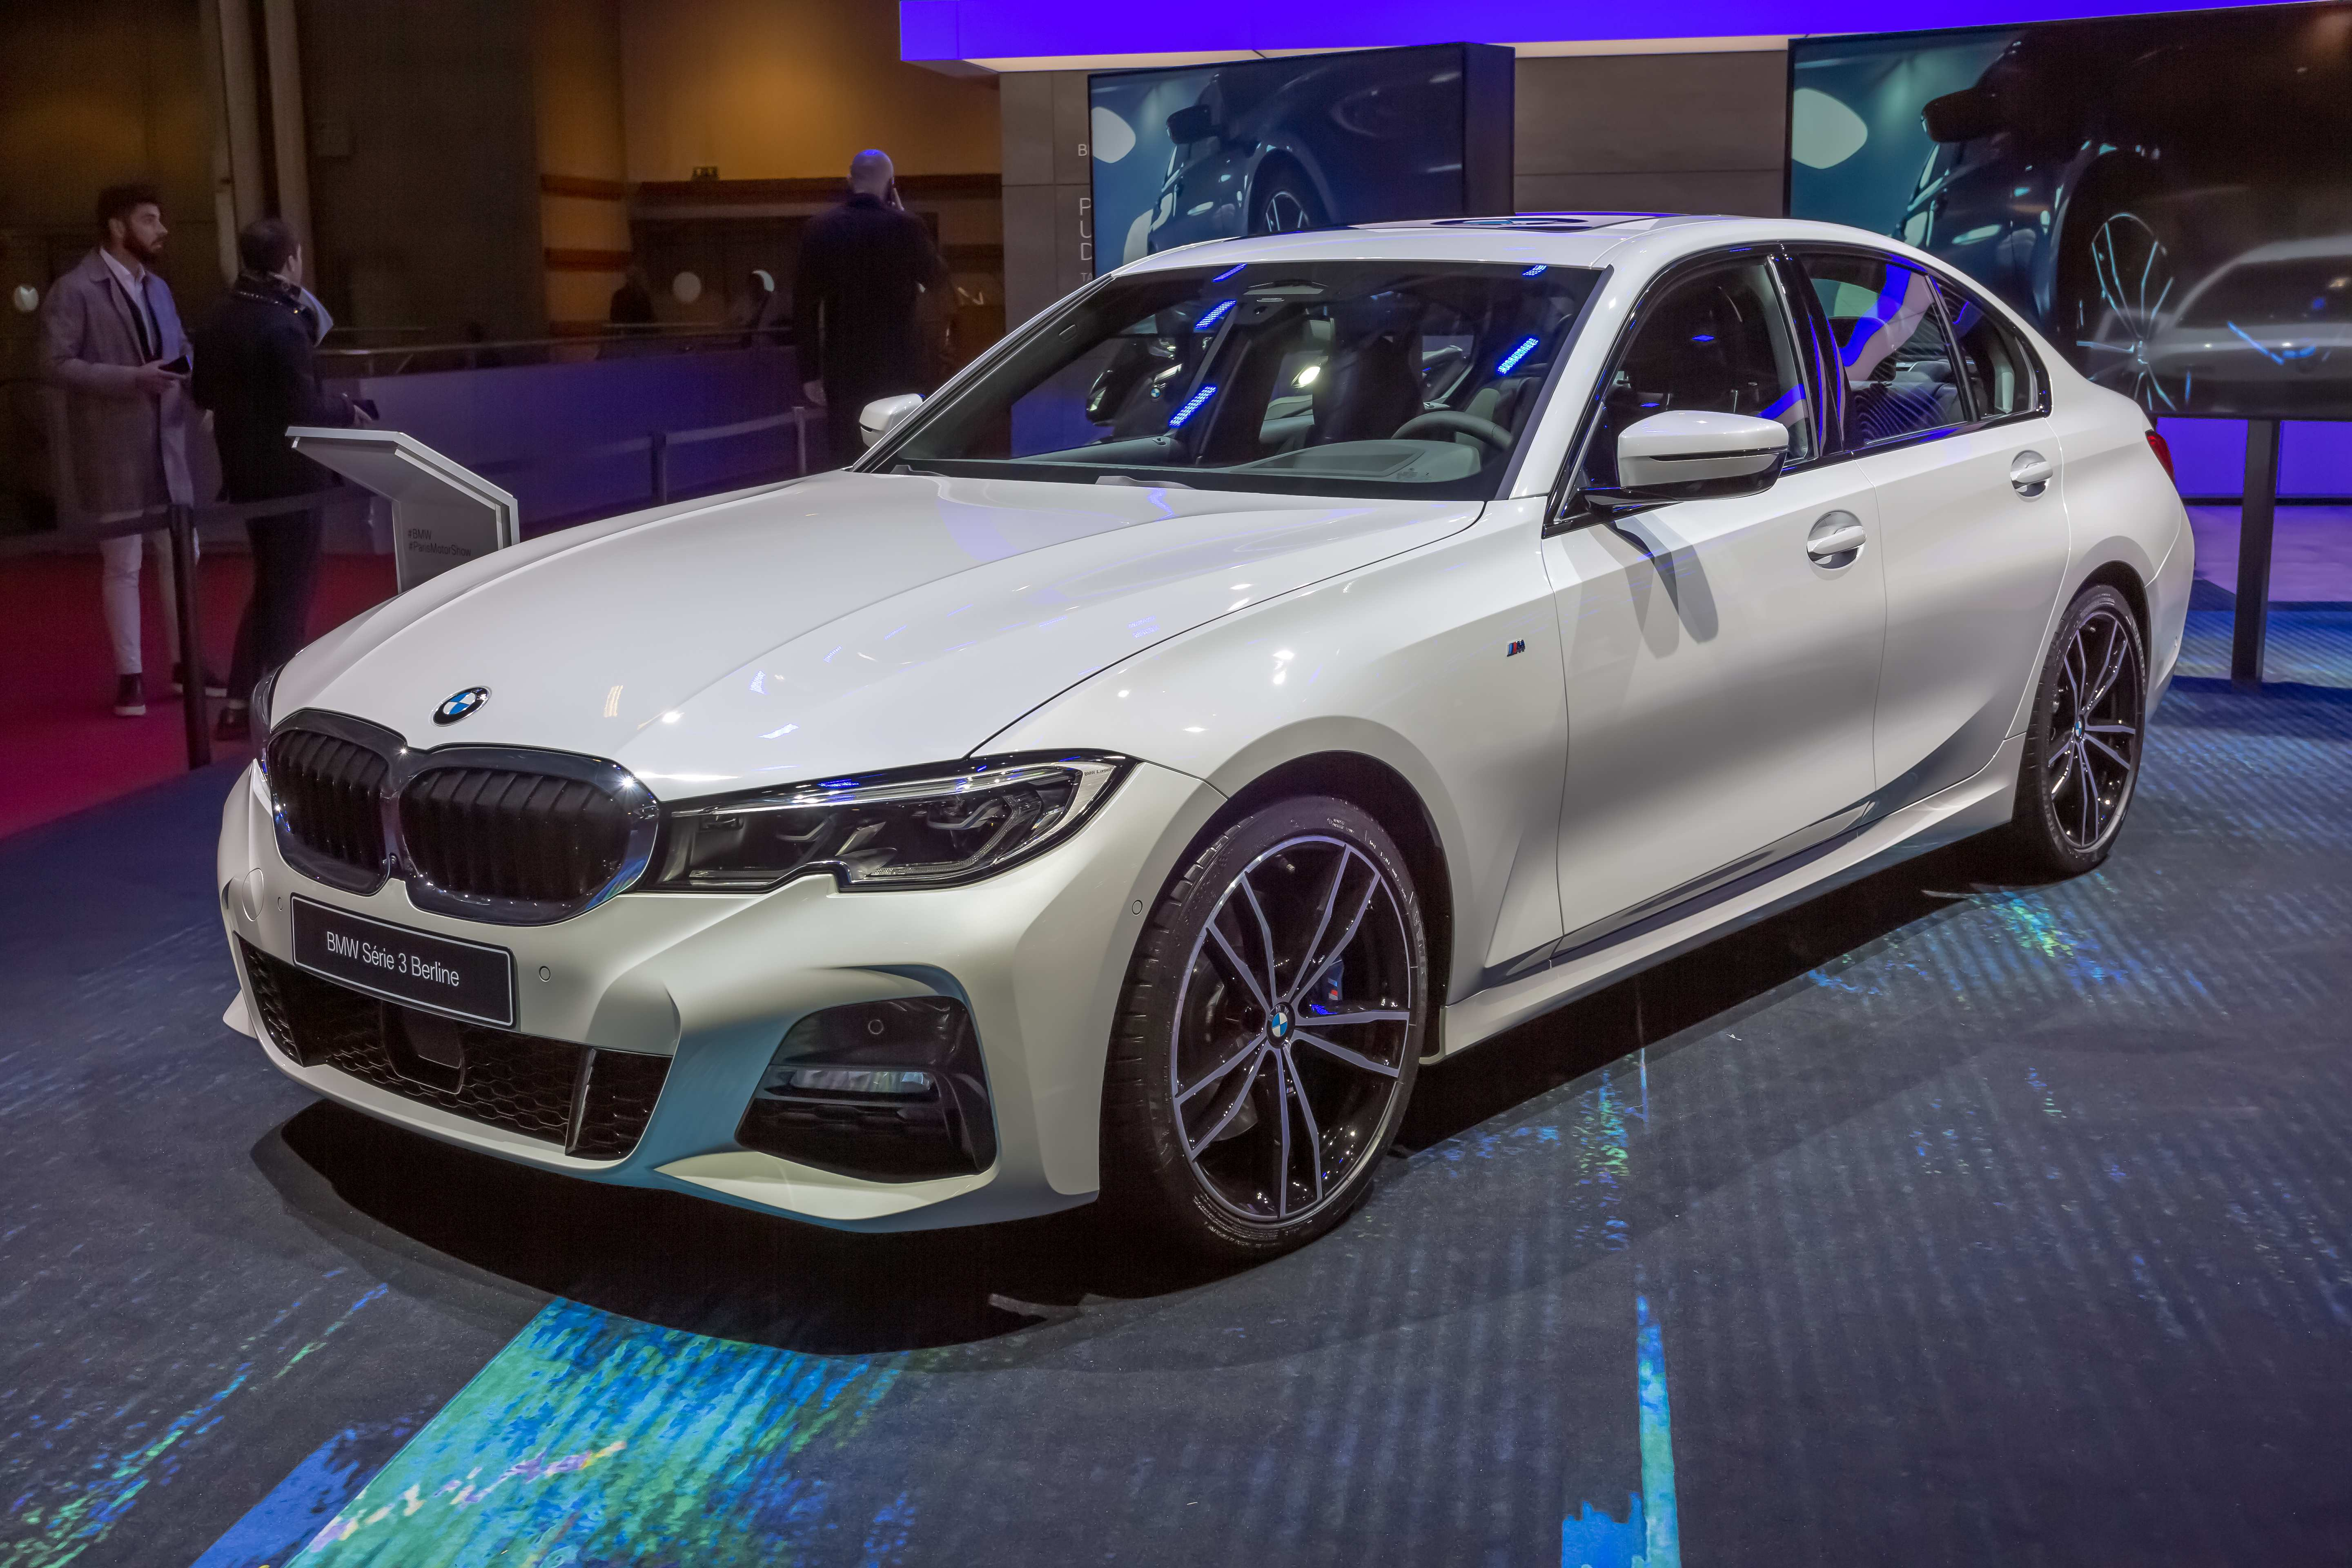 35 New 2020 Bmw M3 Price Performance for 2020 Bmw M3 Price